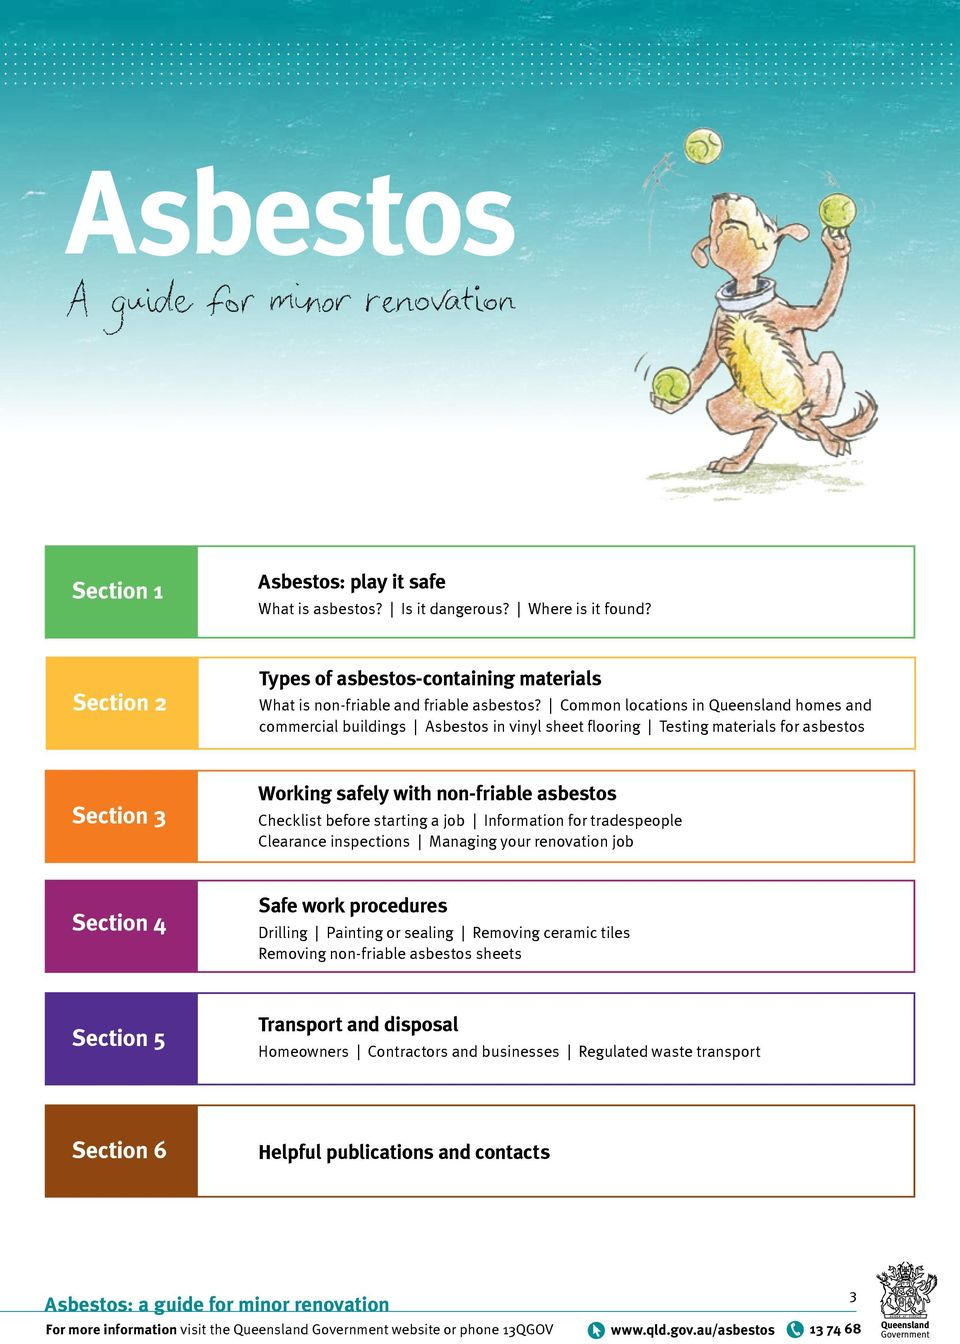 Common locations in Queensland homes and commercial buildings Asbestos in vinyl sheet flooring Testing materials for asbestos Working safely with non-friable asbestos Checklist before starting a job